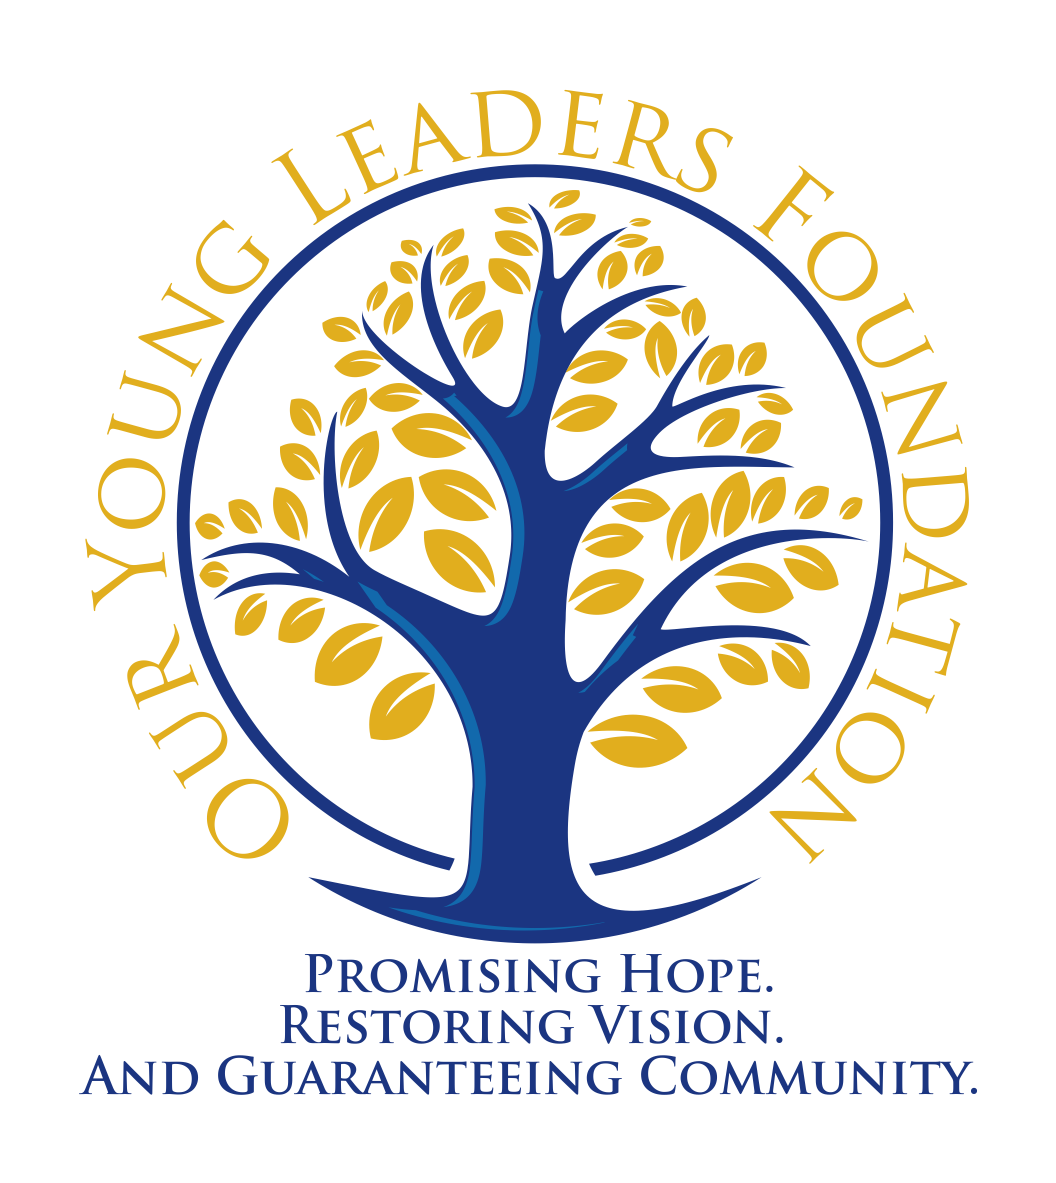 Our Young Leaders Foundation